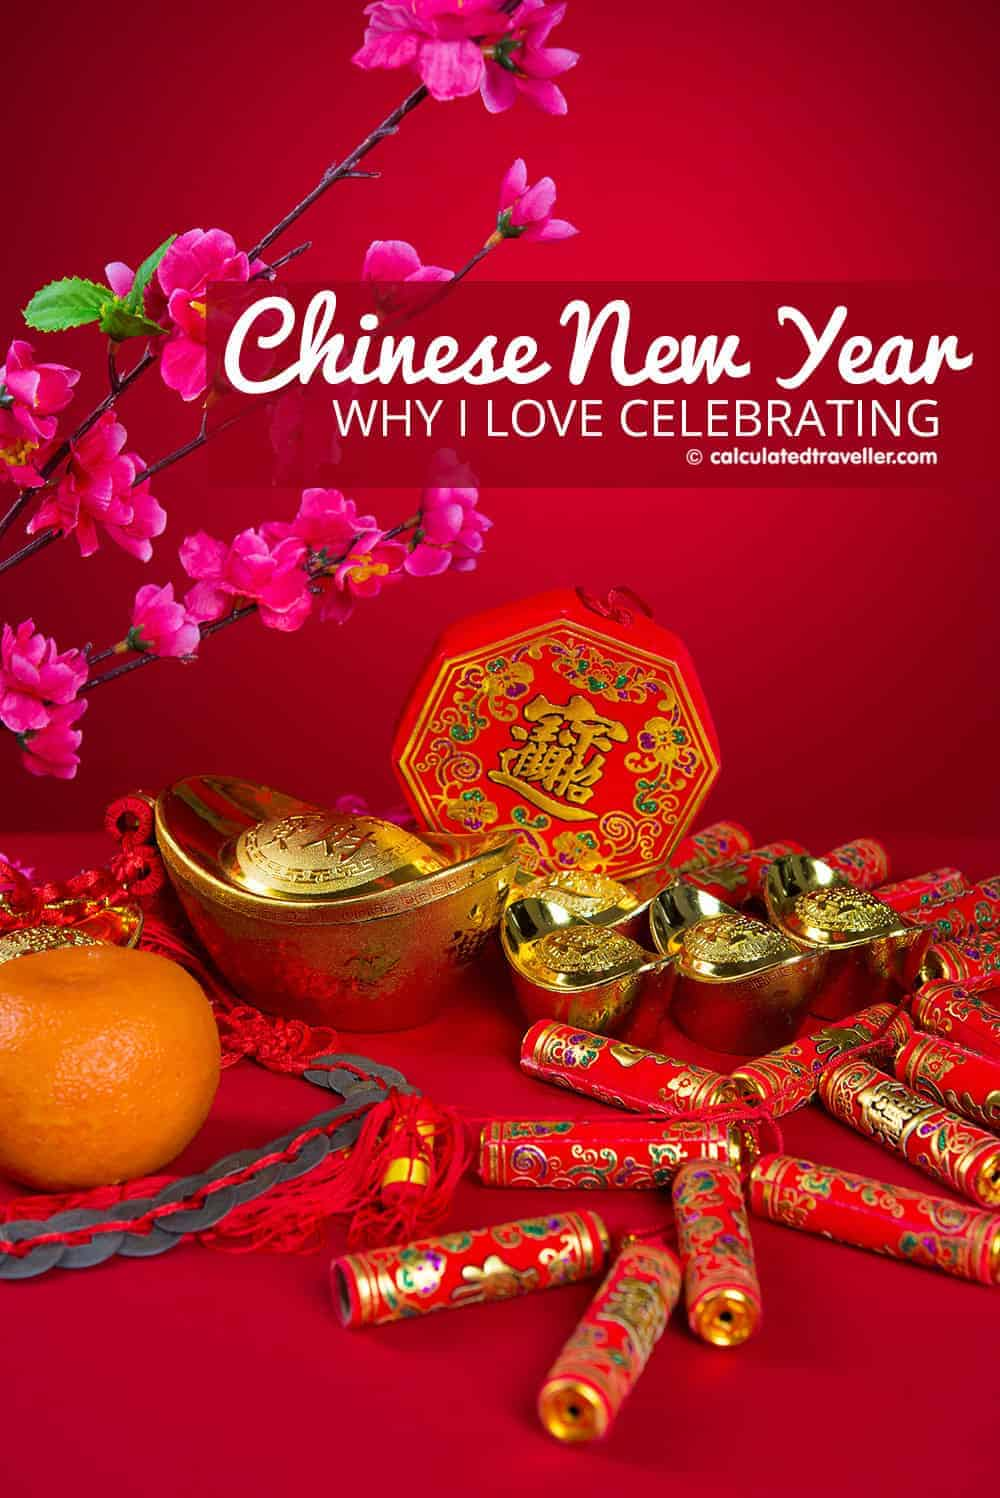 Why I Love Celebrating Chinese New Year, Even Though I'm Not Chinese! Calculated Traveller | #Chinese #celebration #NewYear #HongKong